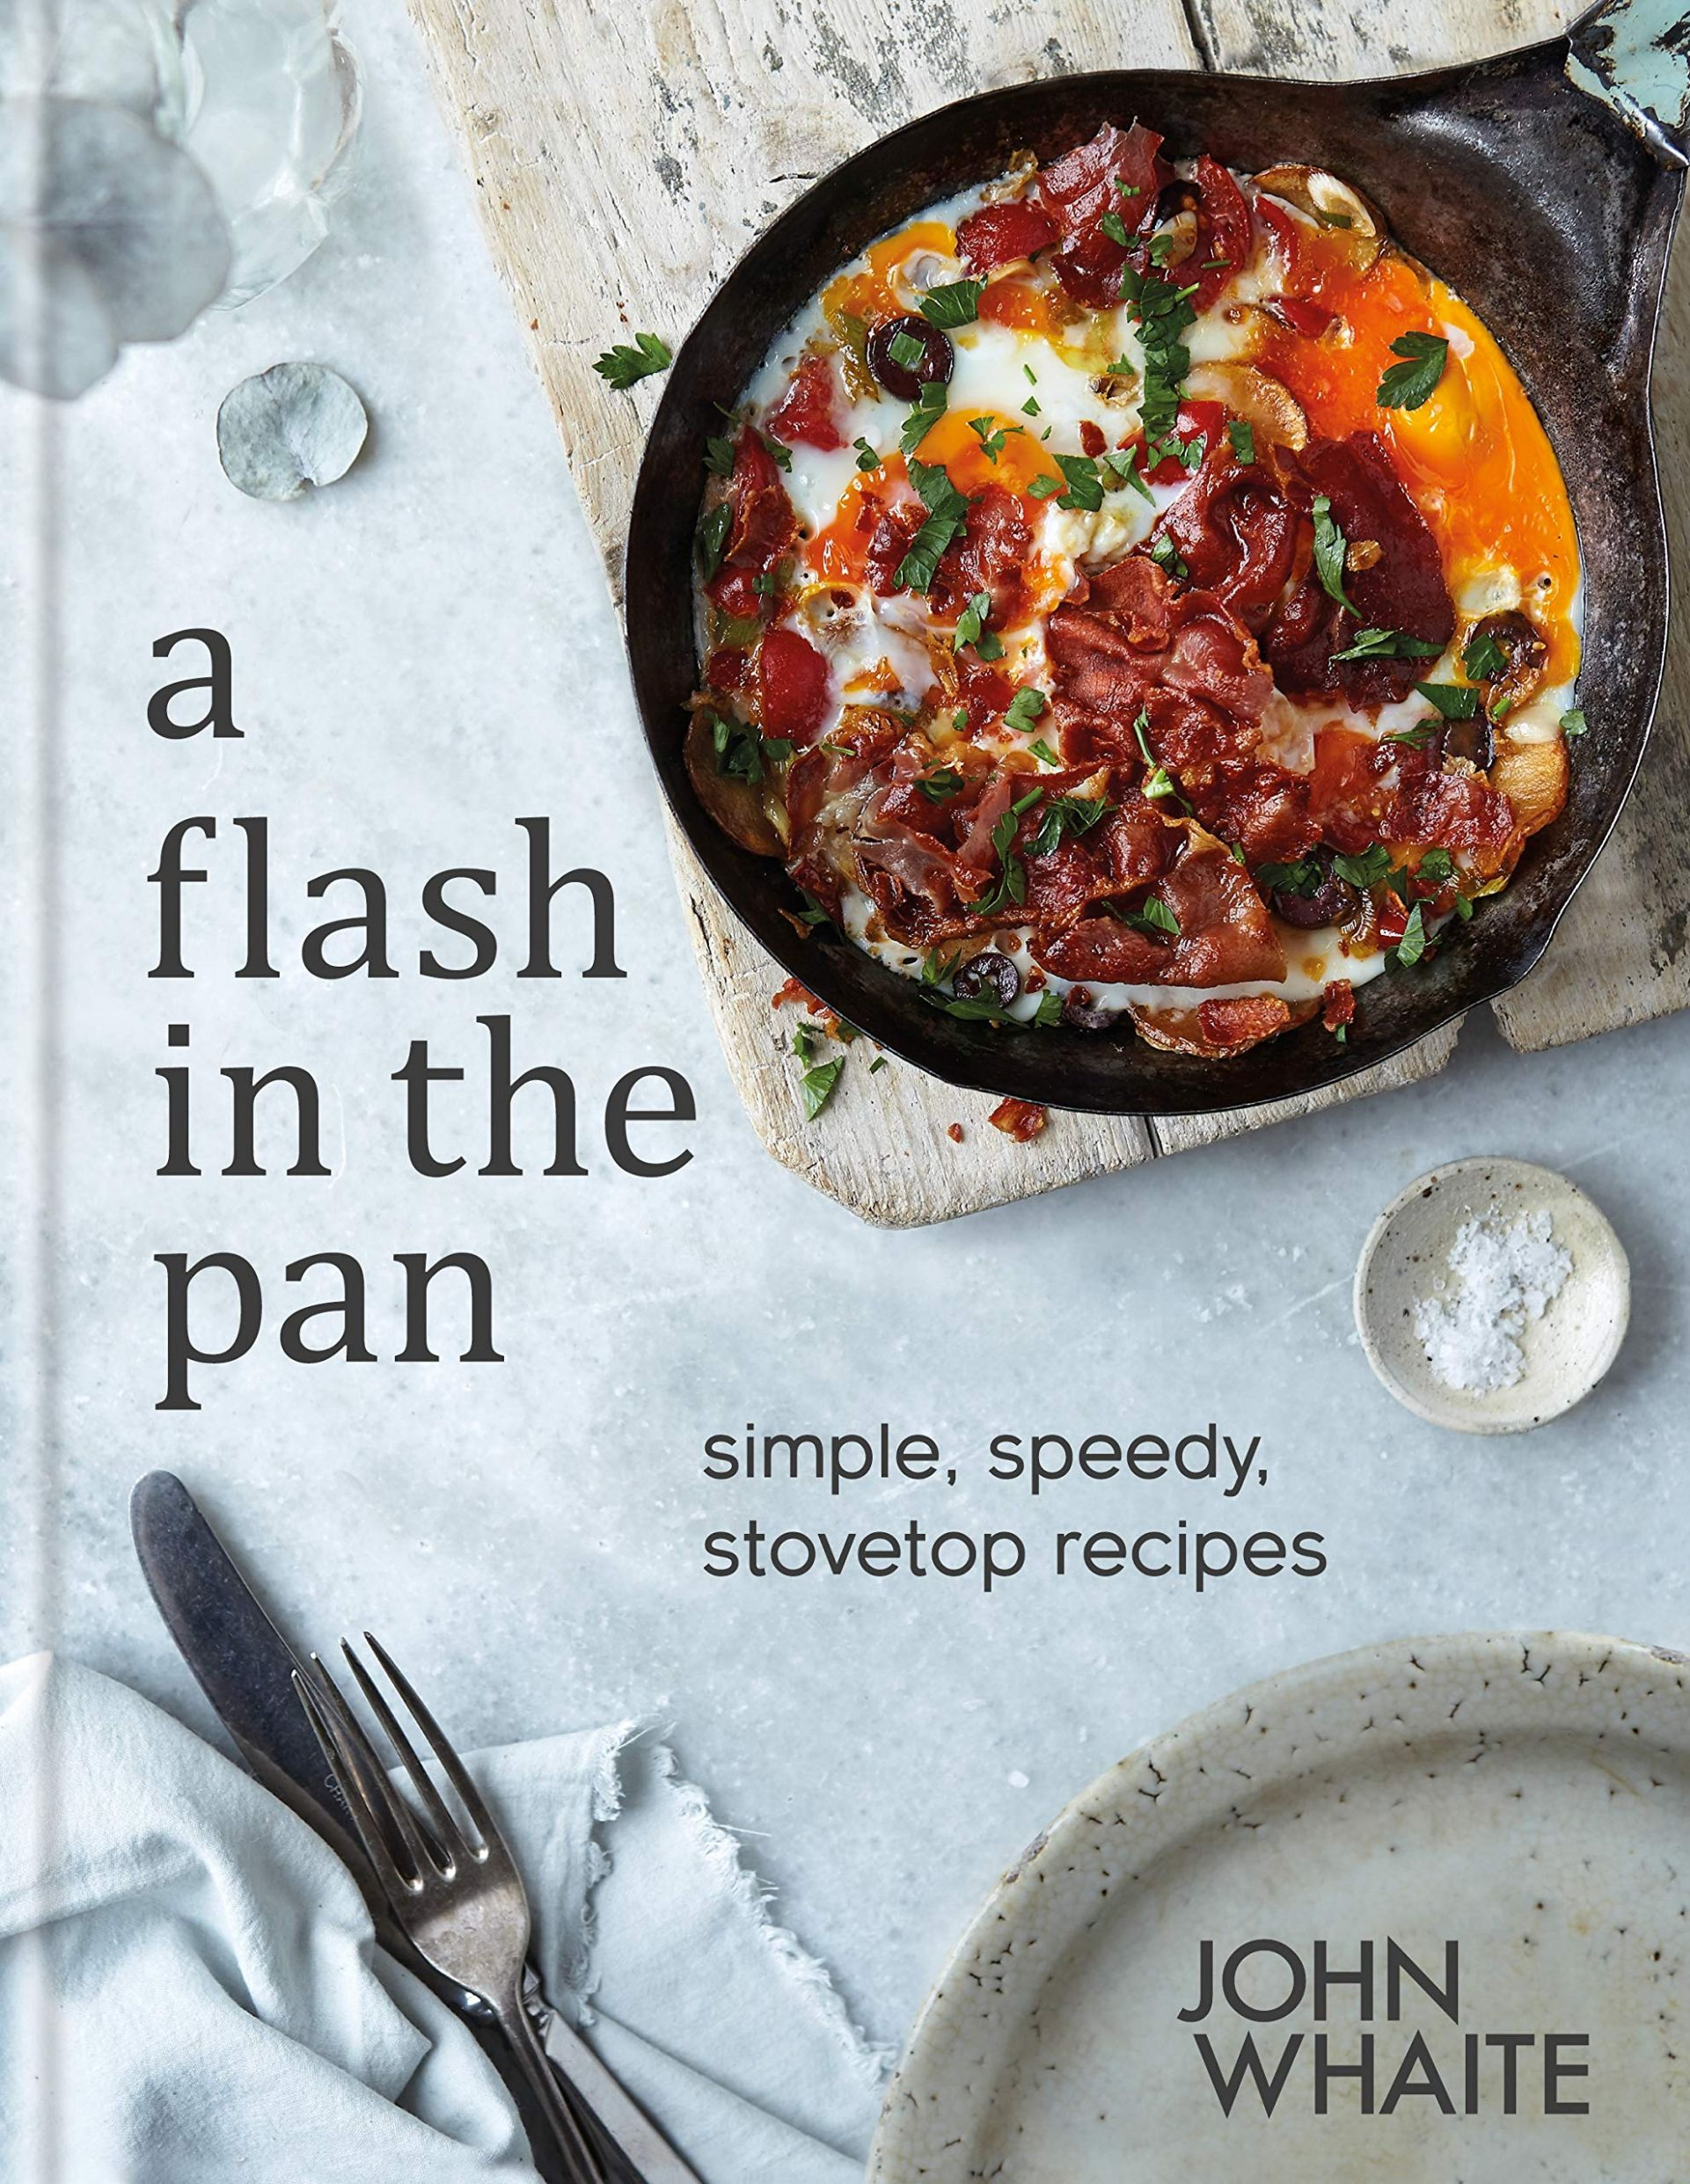 A Flash in the Pan: Simple, speedy stovetop recipes: Amazon.co.uk ...